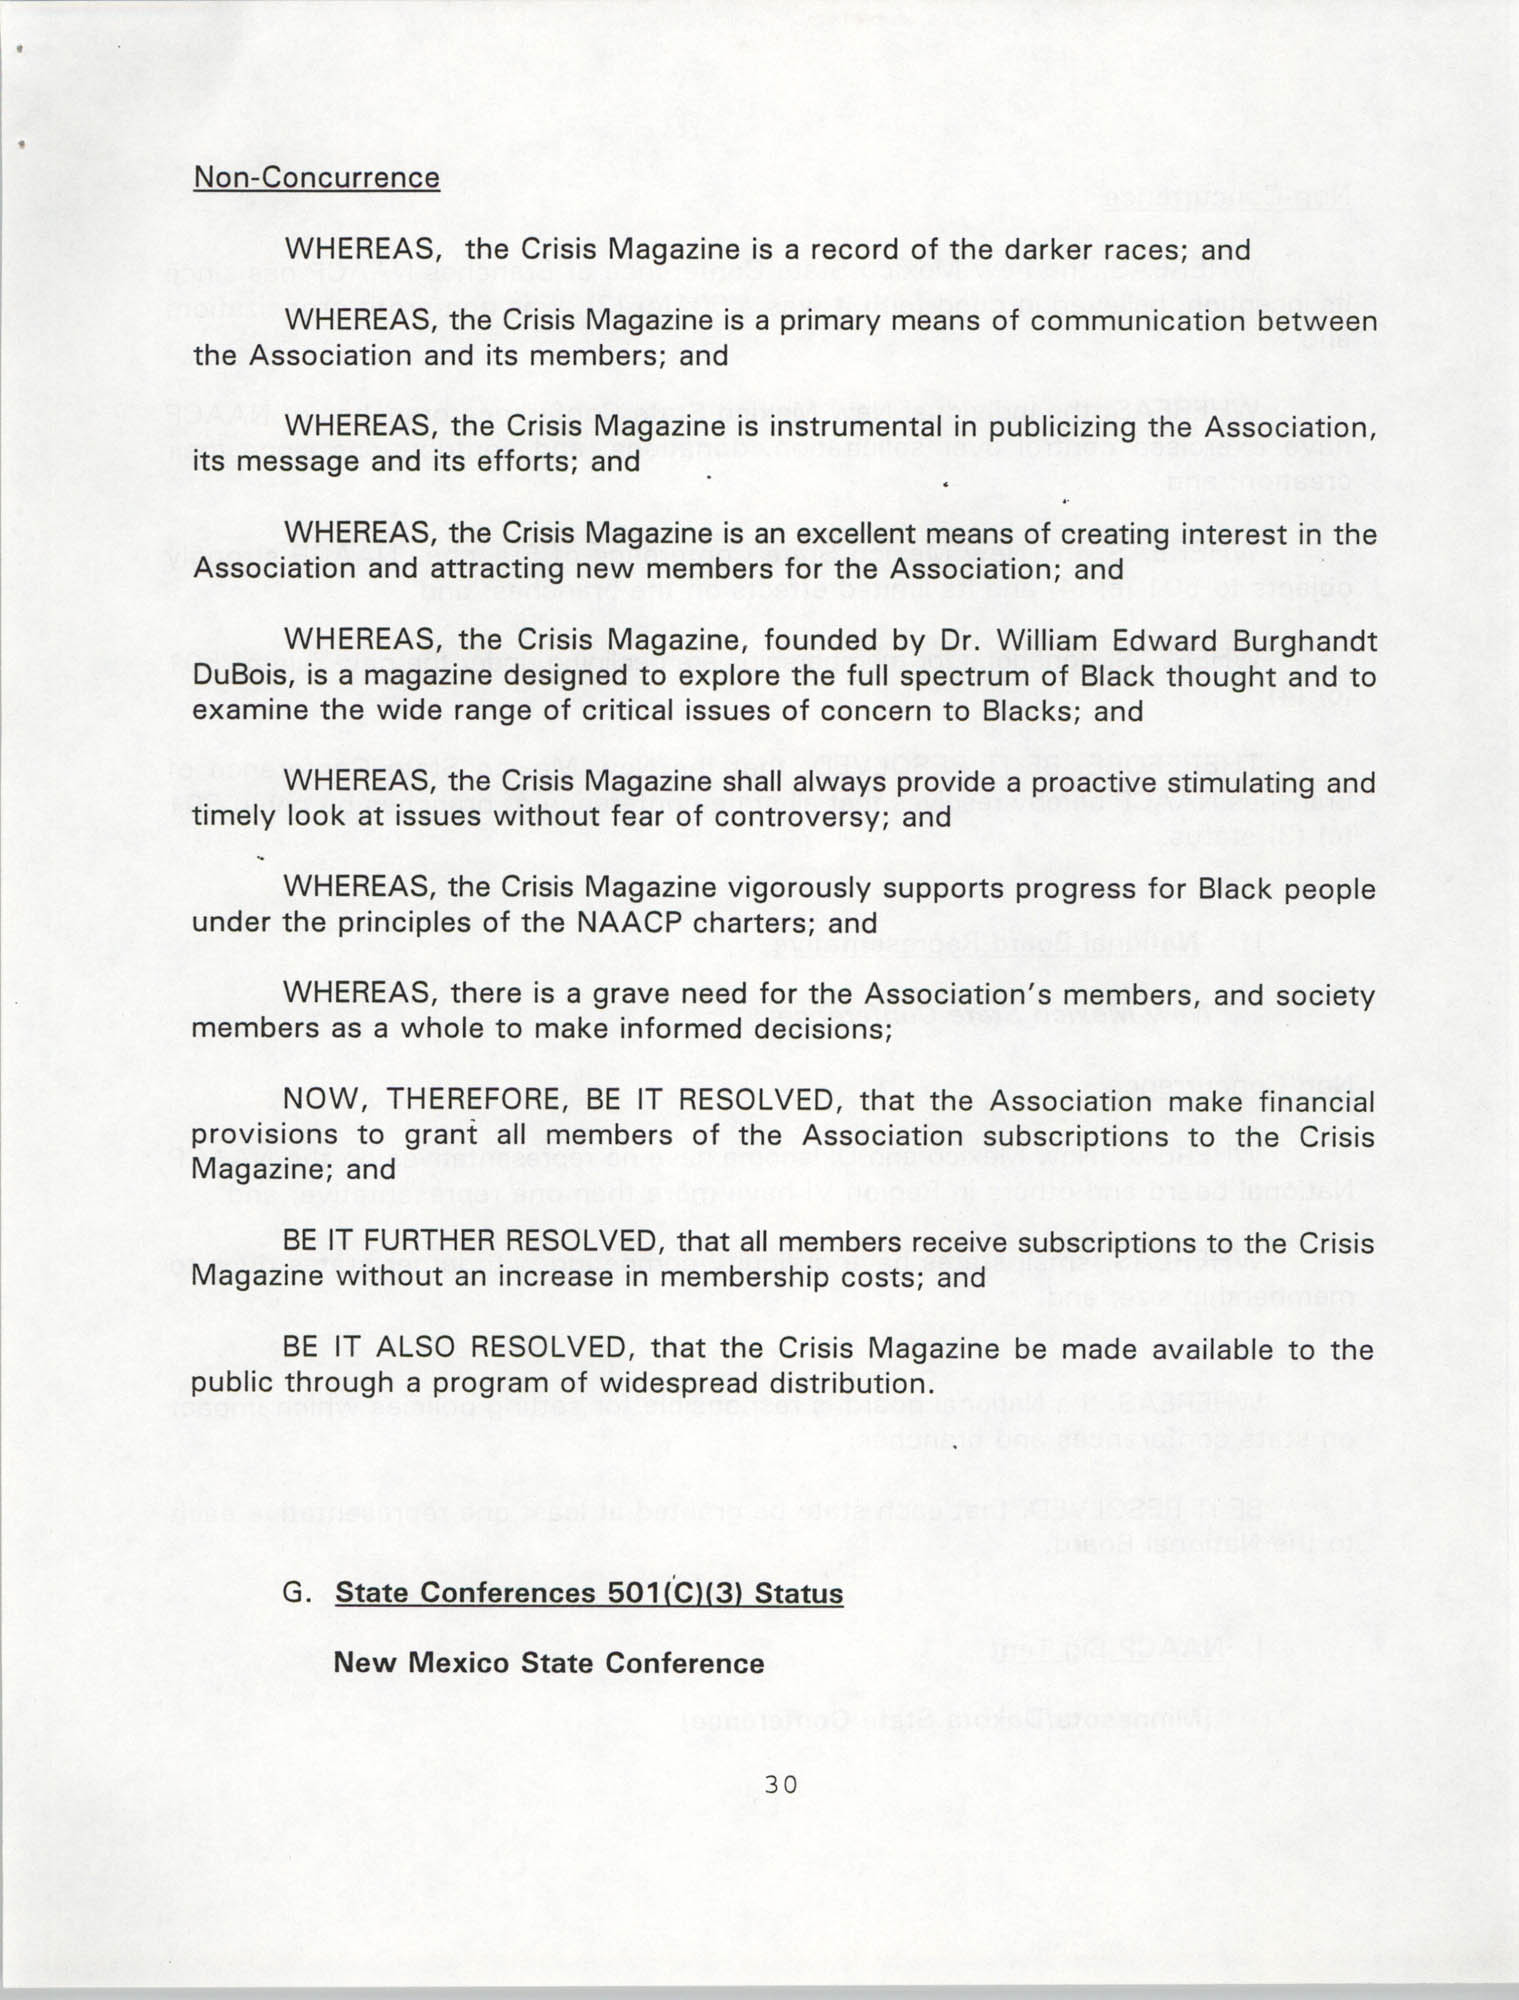 Resolutions Submitted Under Article X, Section 2 of the Constitution of the NAACP, 1994, Page 30